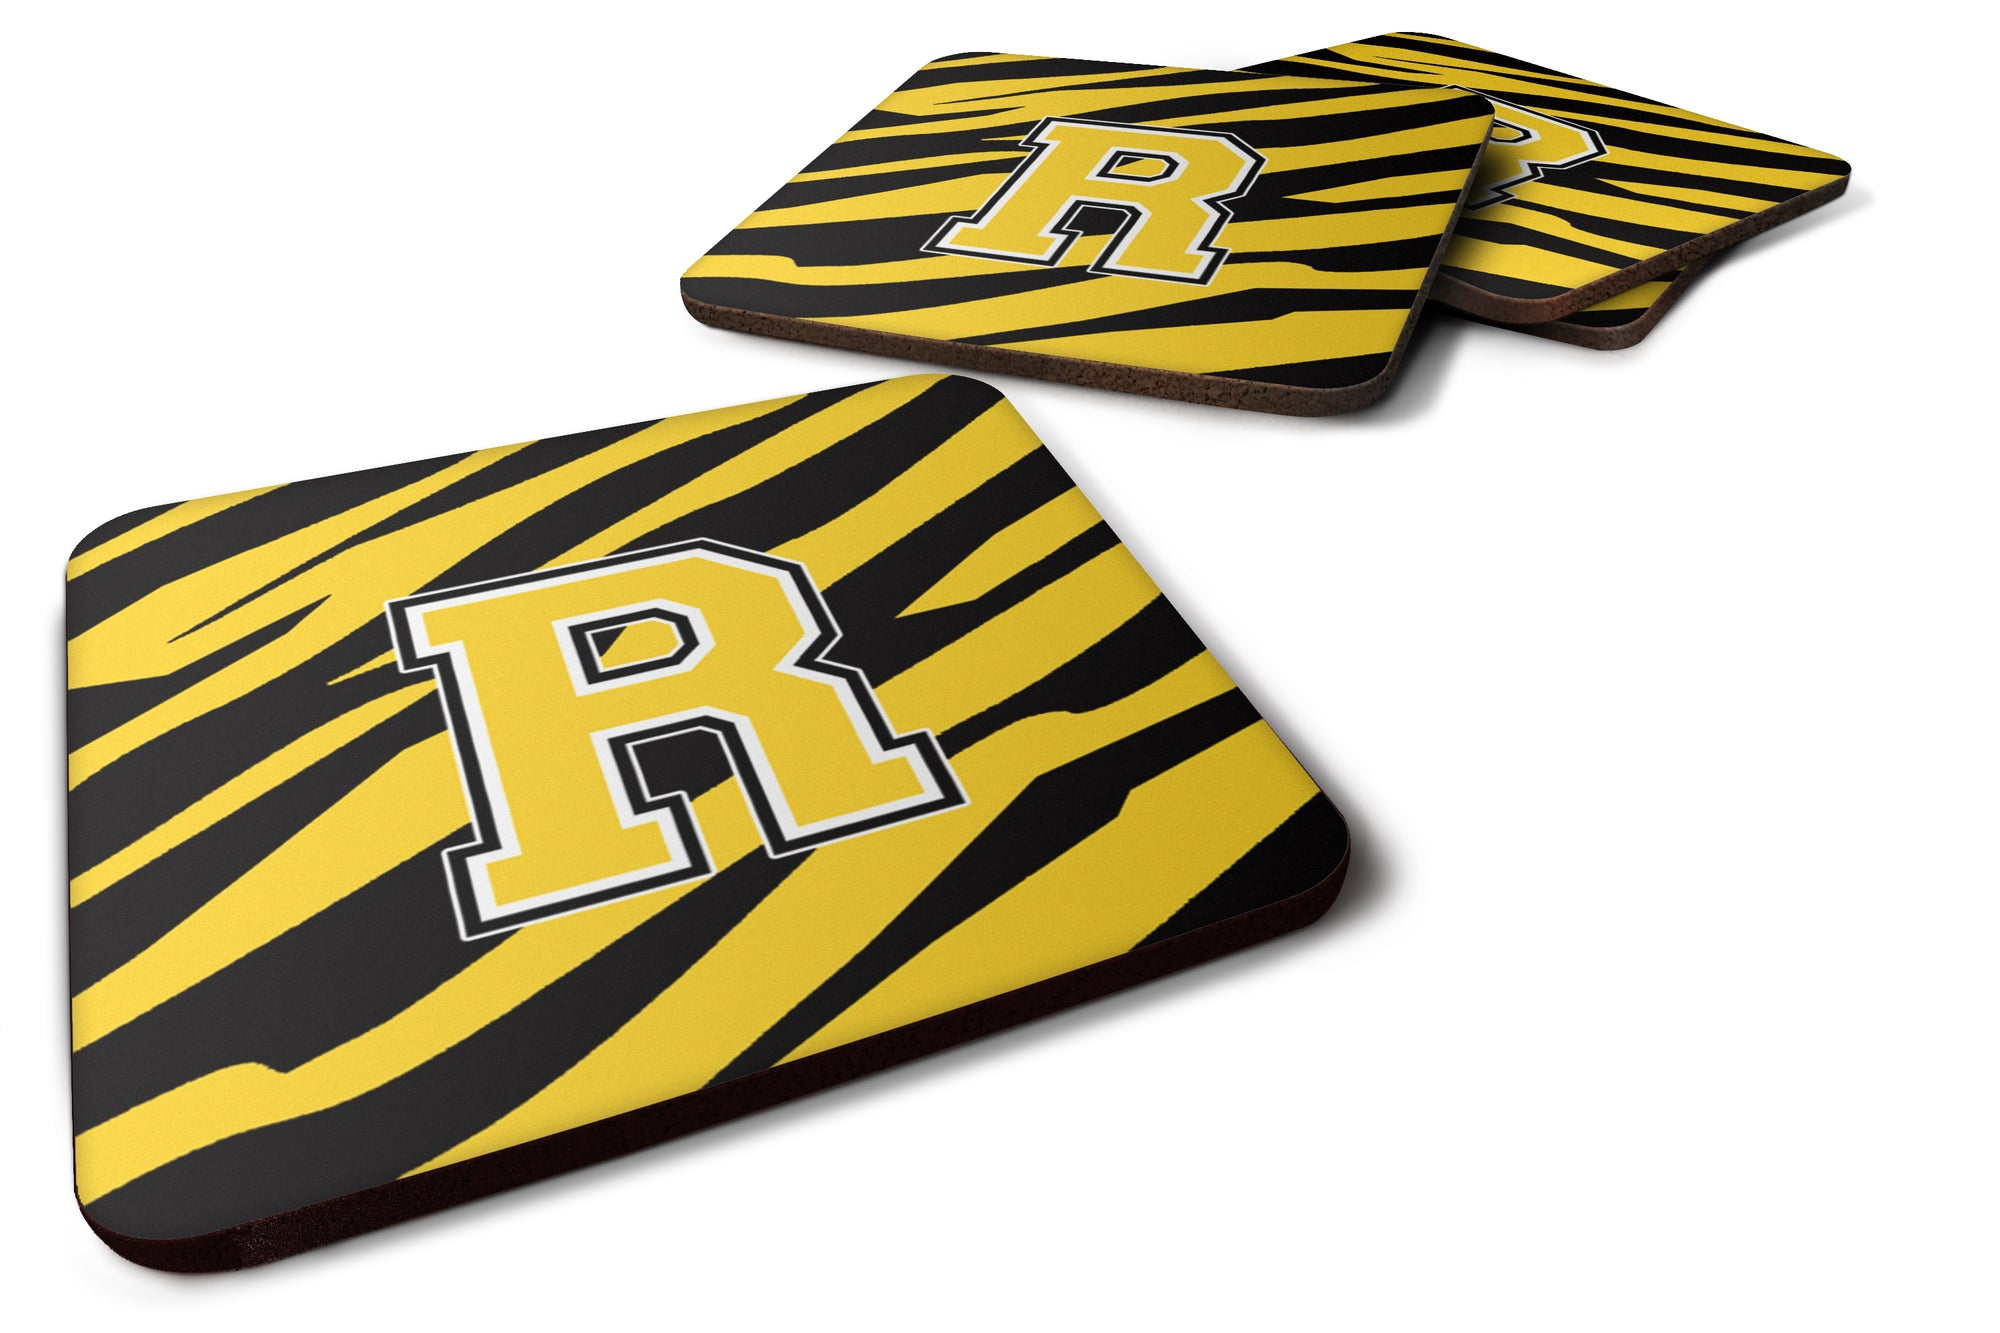 Set of 4 Monogram - Tiger Stripe - Black Gold Foam Coasters Initial Letter R by Caroline's Treasures